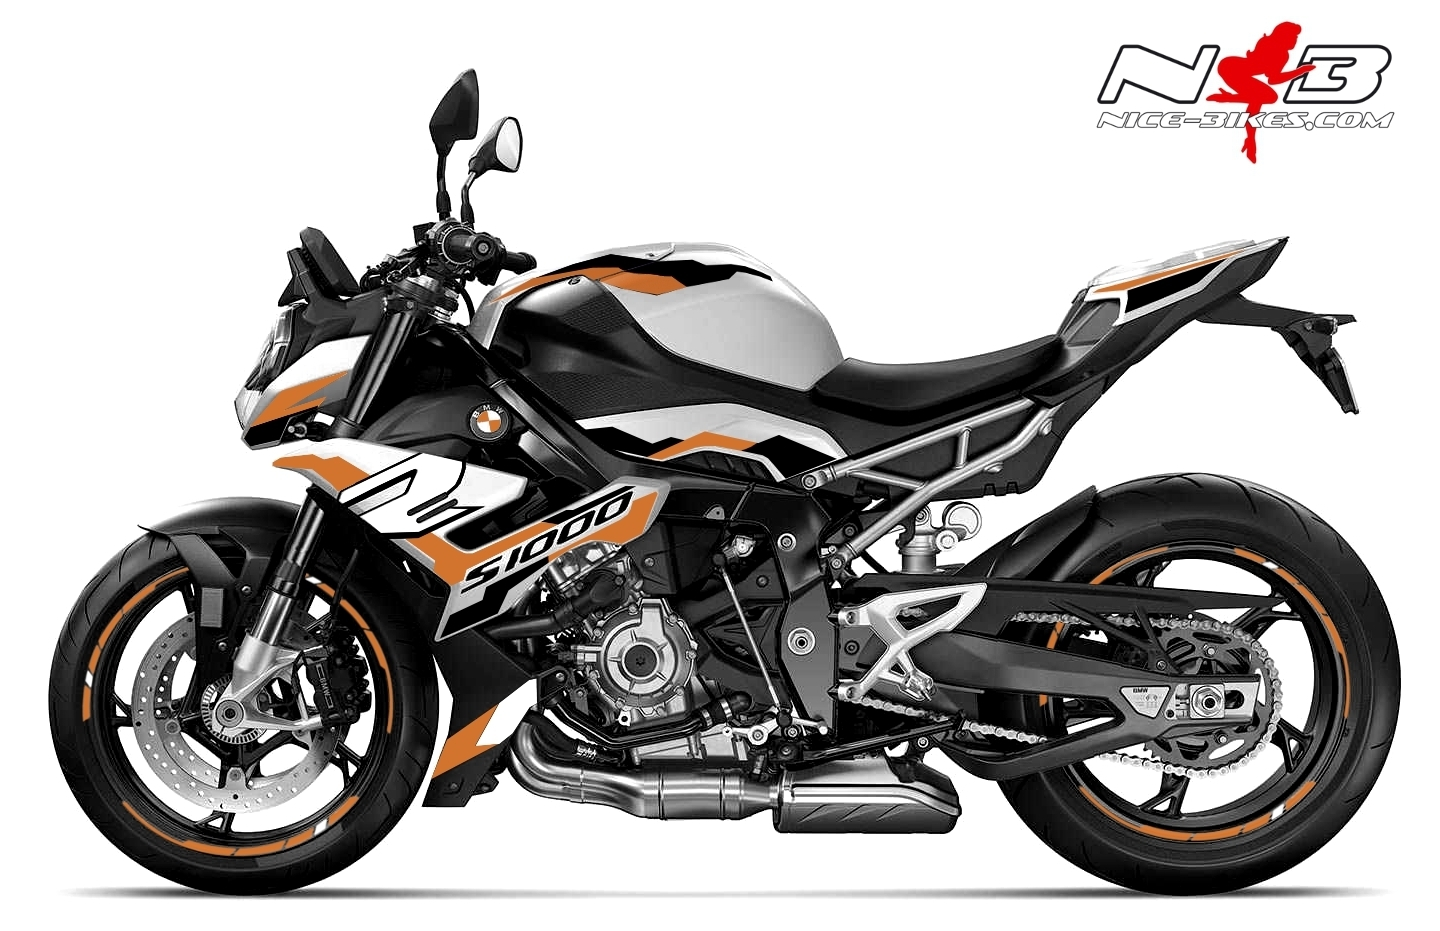 Foliendesign BMW S1000R (Bj. 2021) Olympic Gold